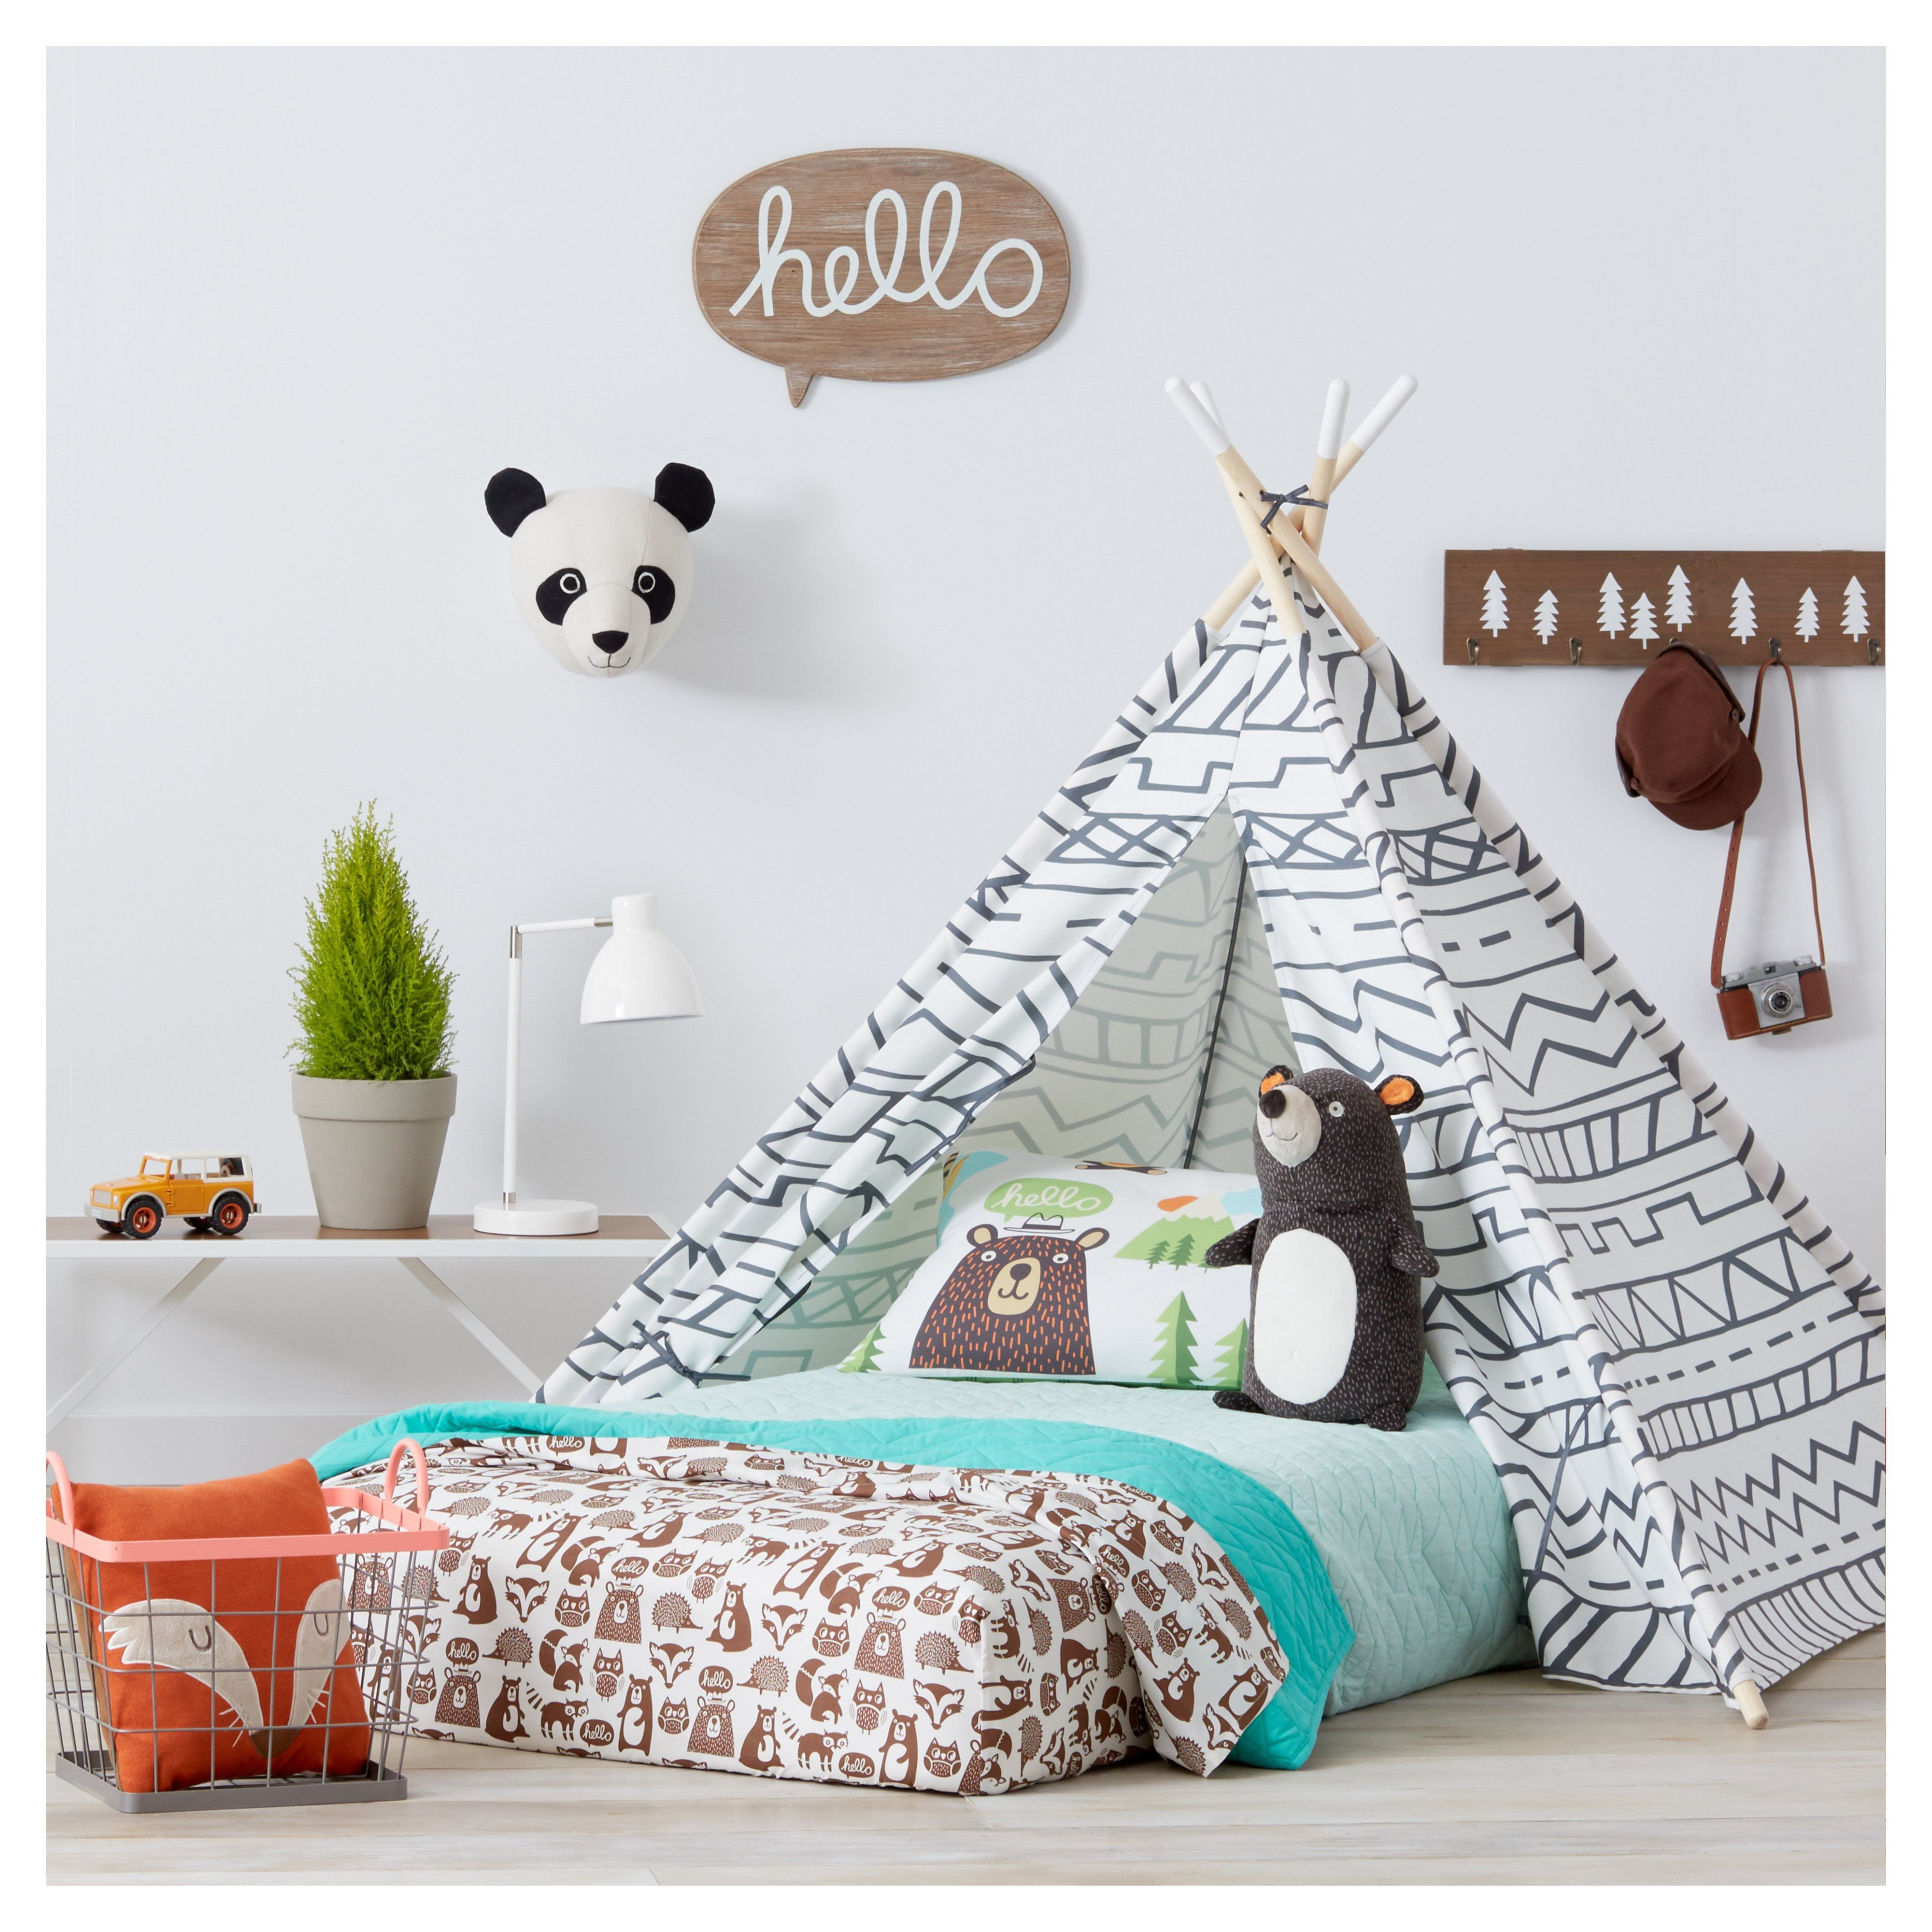 Your Child Will Have A Friend To Come Home To Every Day With The